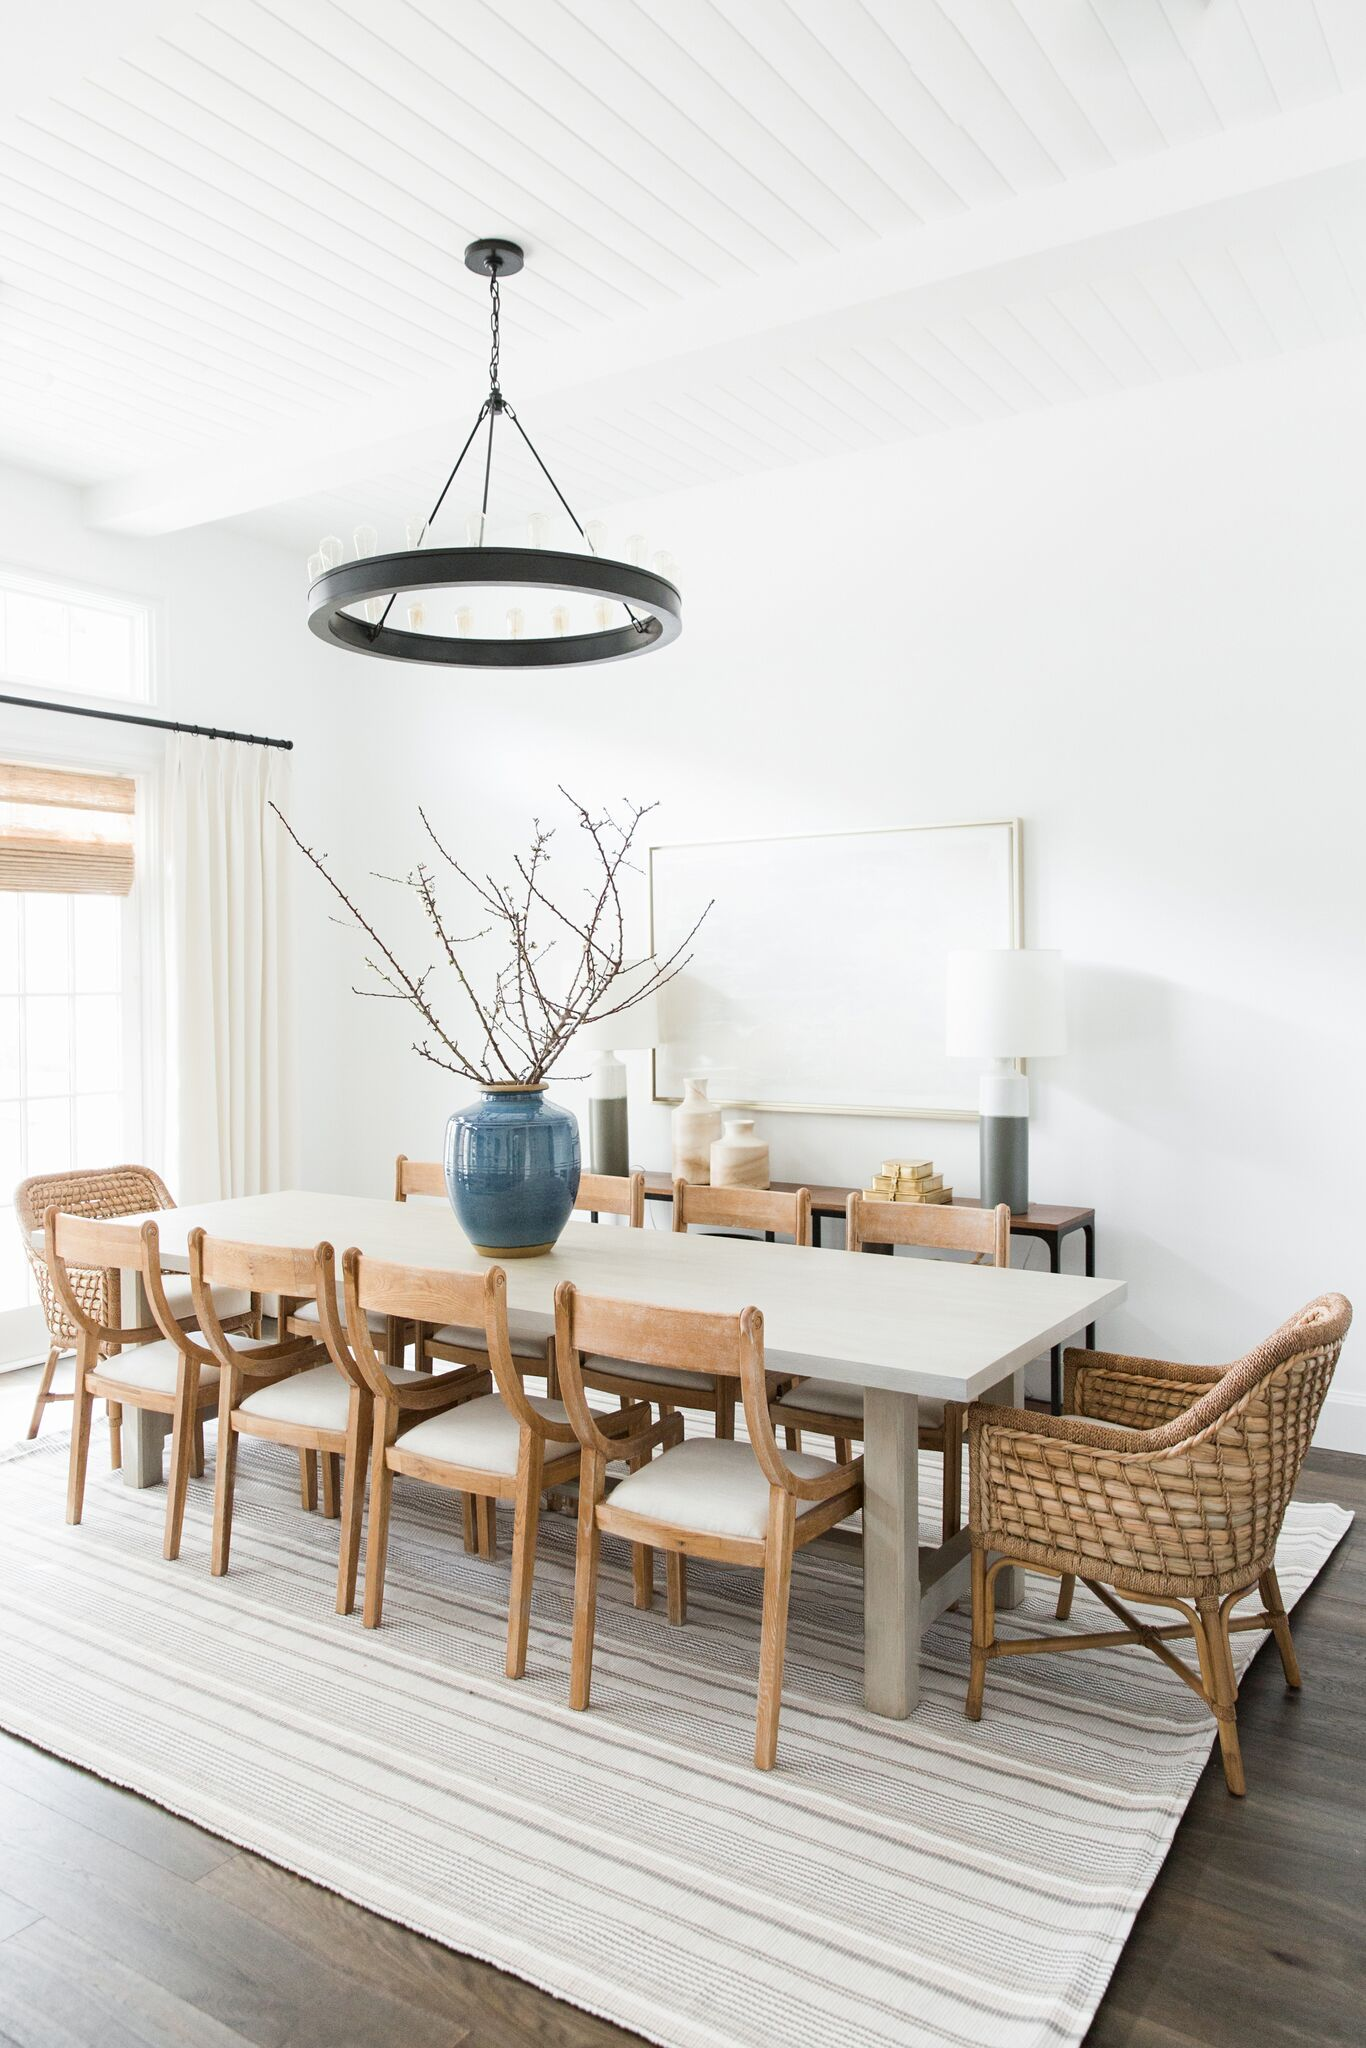 Casual Bright Laid Back California Great Room Living Dining Space Dining Room Remodel Dining Room Small Dining Room Design